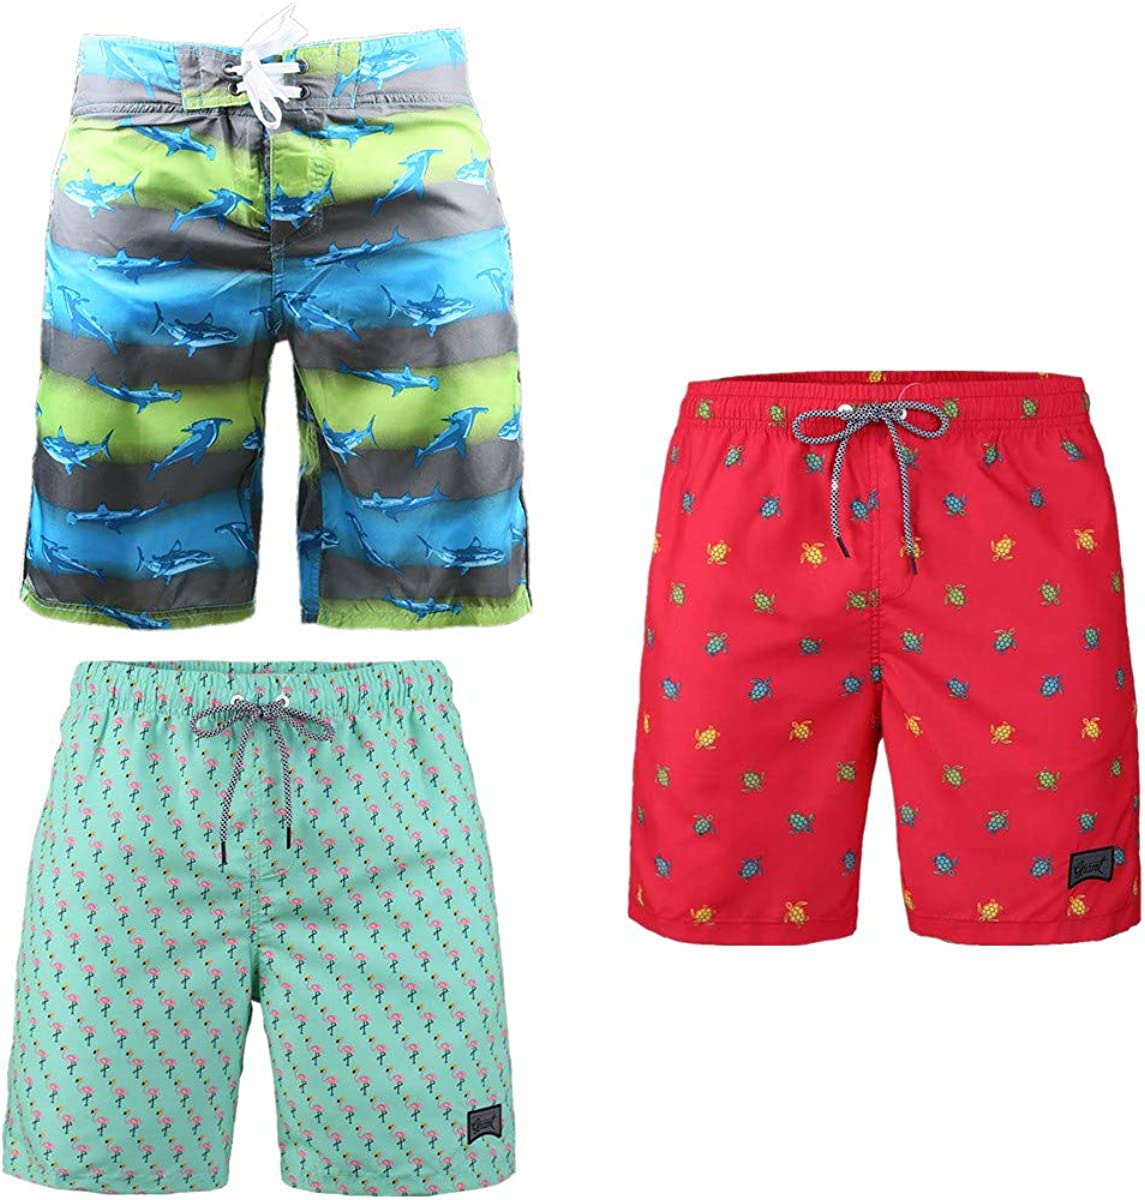 Beautiful Giant 3-Pack Men's Board Shorts Drawstring Vacation Lightweight Quick Dry Underwear